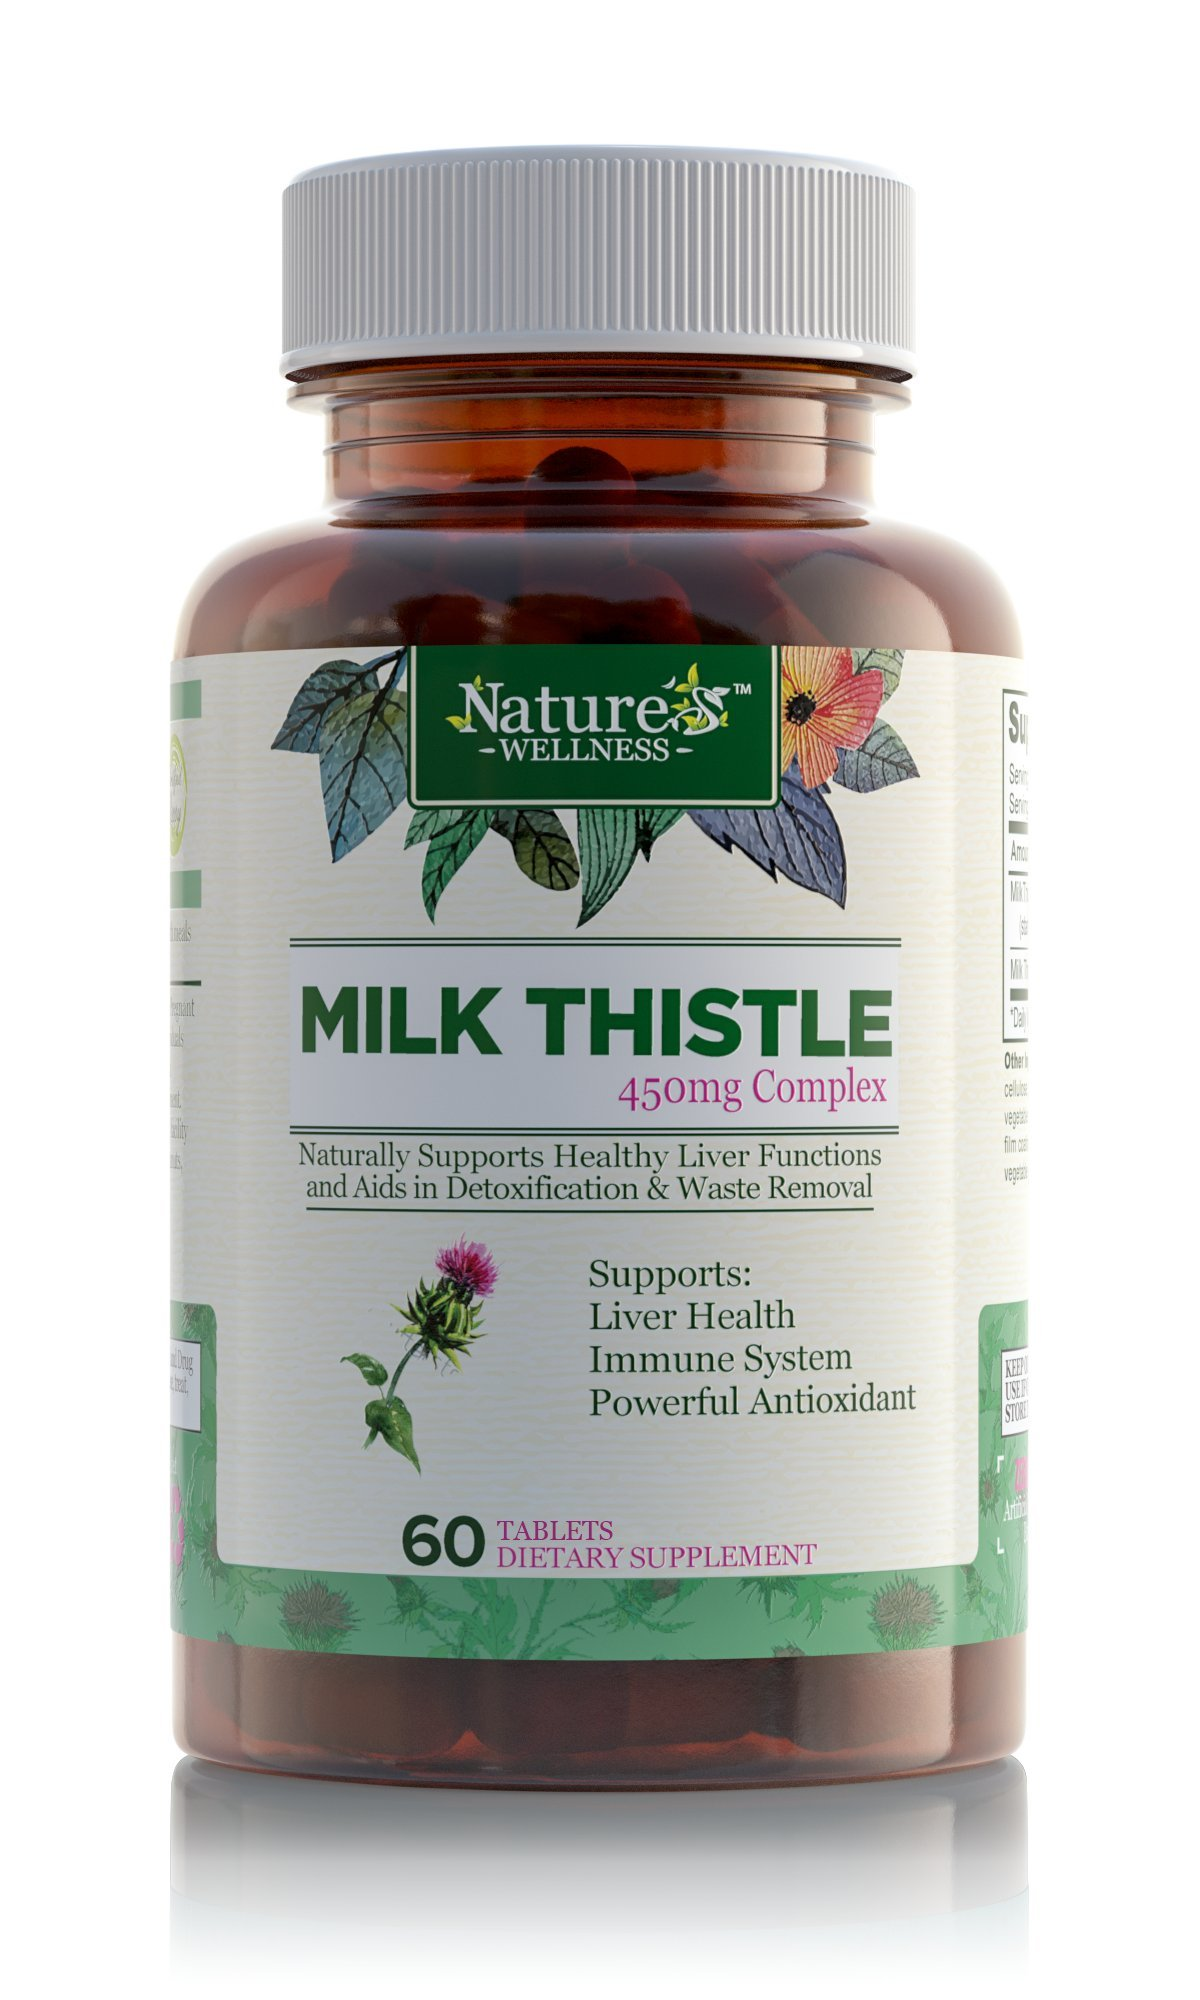 Milk Thistle | 80% Standardized Silymarin Extract for Maximum Liver Support - Detox, Cleanse & Maintain Your Liver – Extract & Seed Complex - Natural Herbal Supplement | 60 Tablets